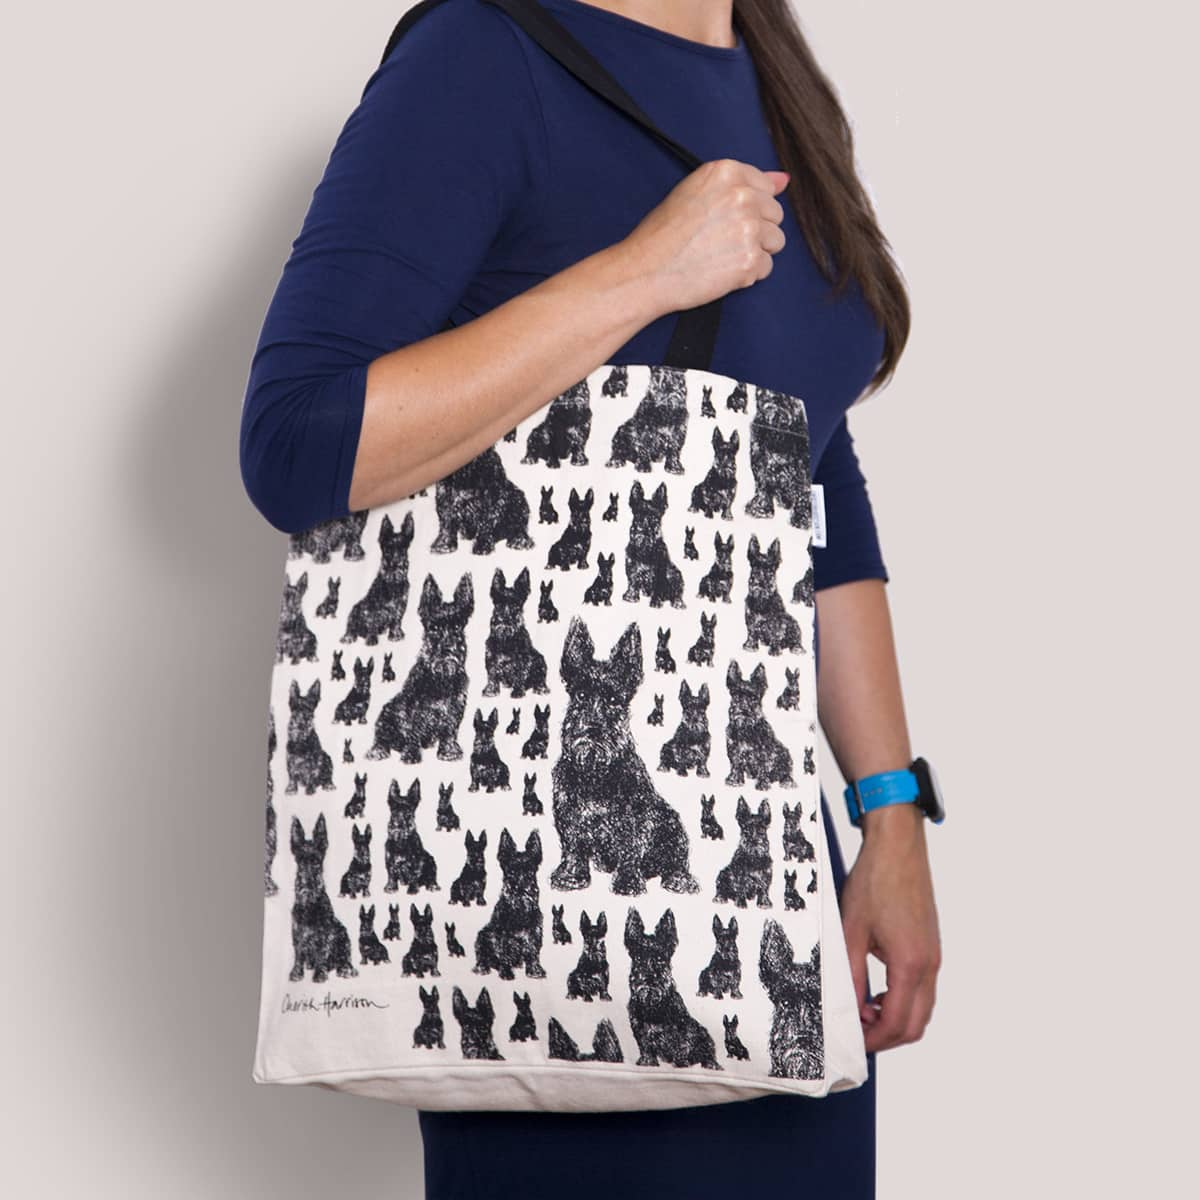 Gift for dog lover. Scottie dog cotton print fabric eco tote bag